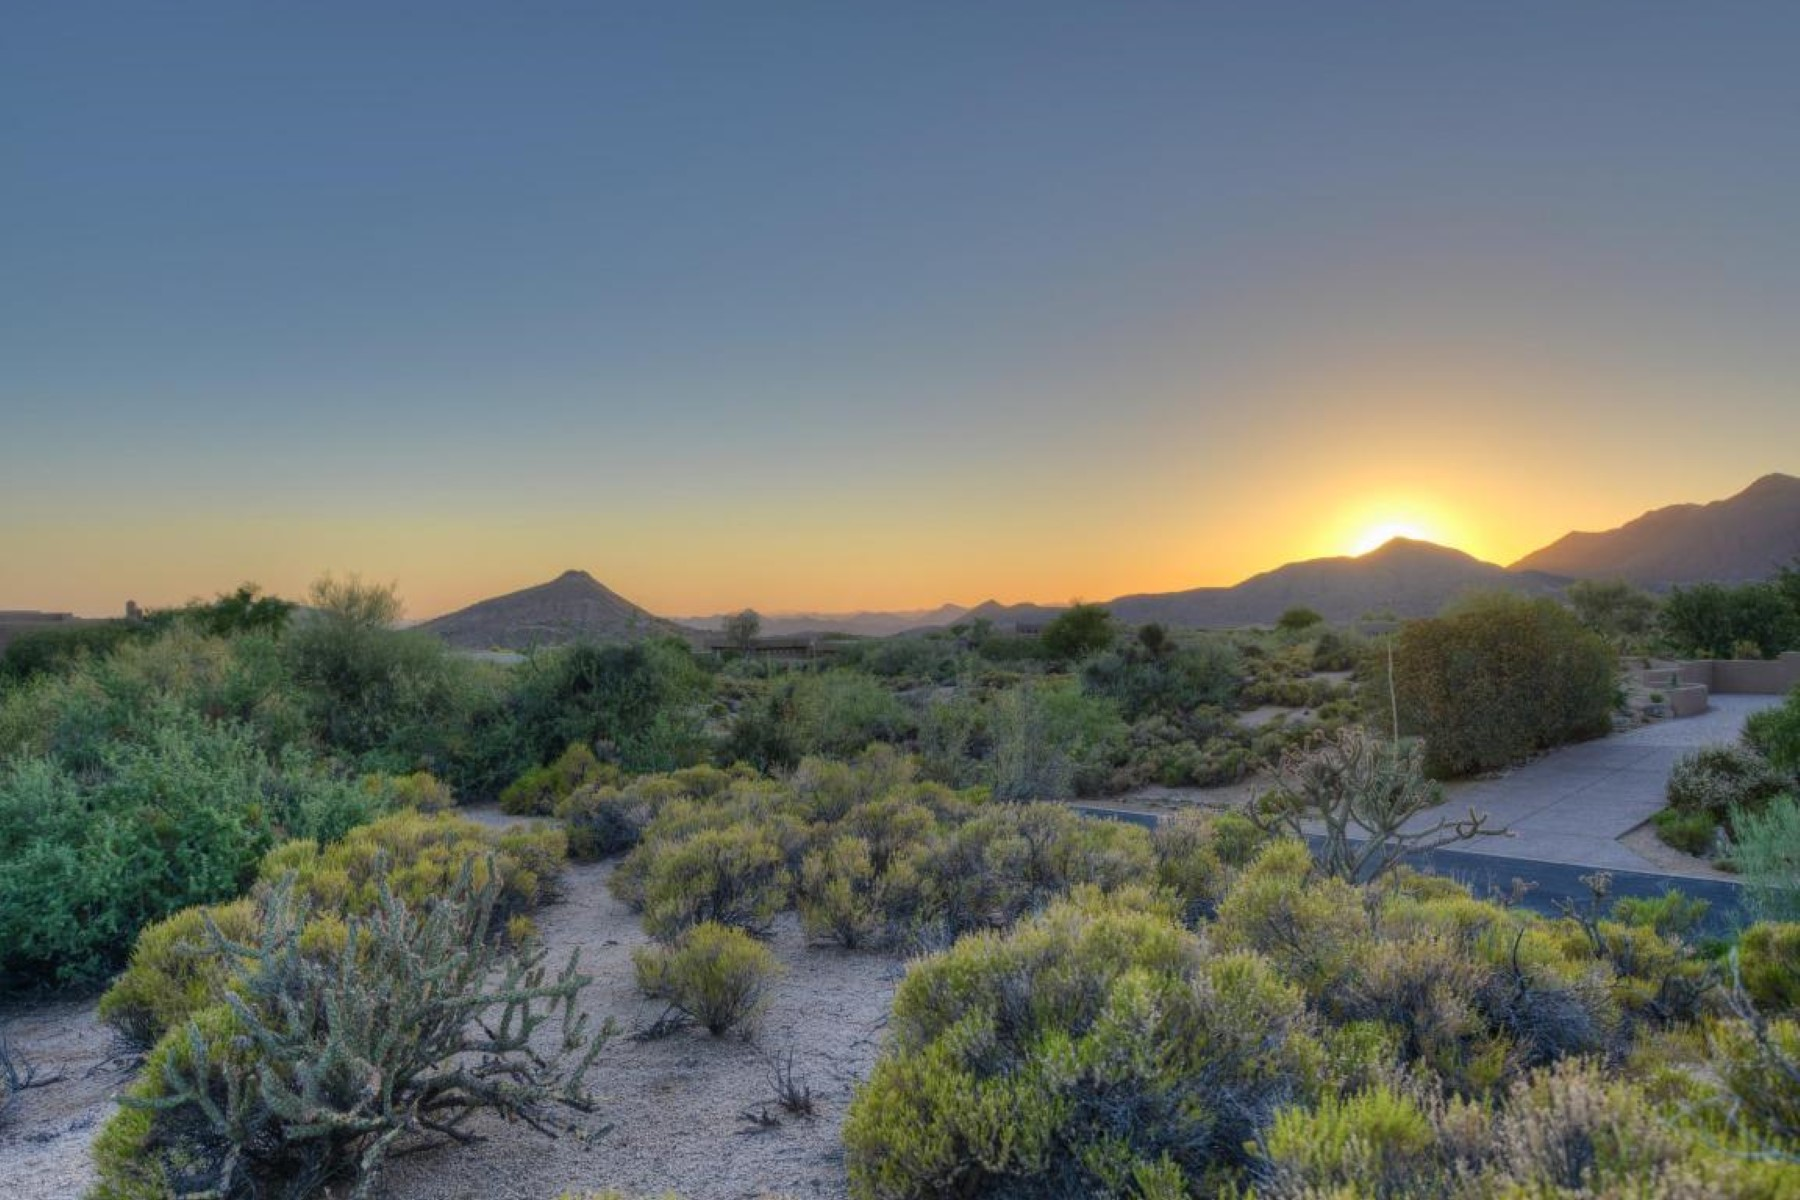 Land for Sale at Panoramic sunset, city lights and mountain views. 40089 N 107TH ST 161 Scottsdale, Arizona 85262 United States